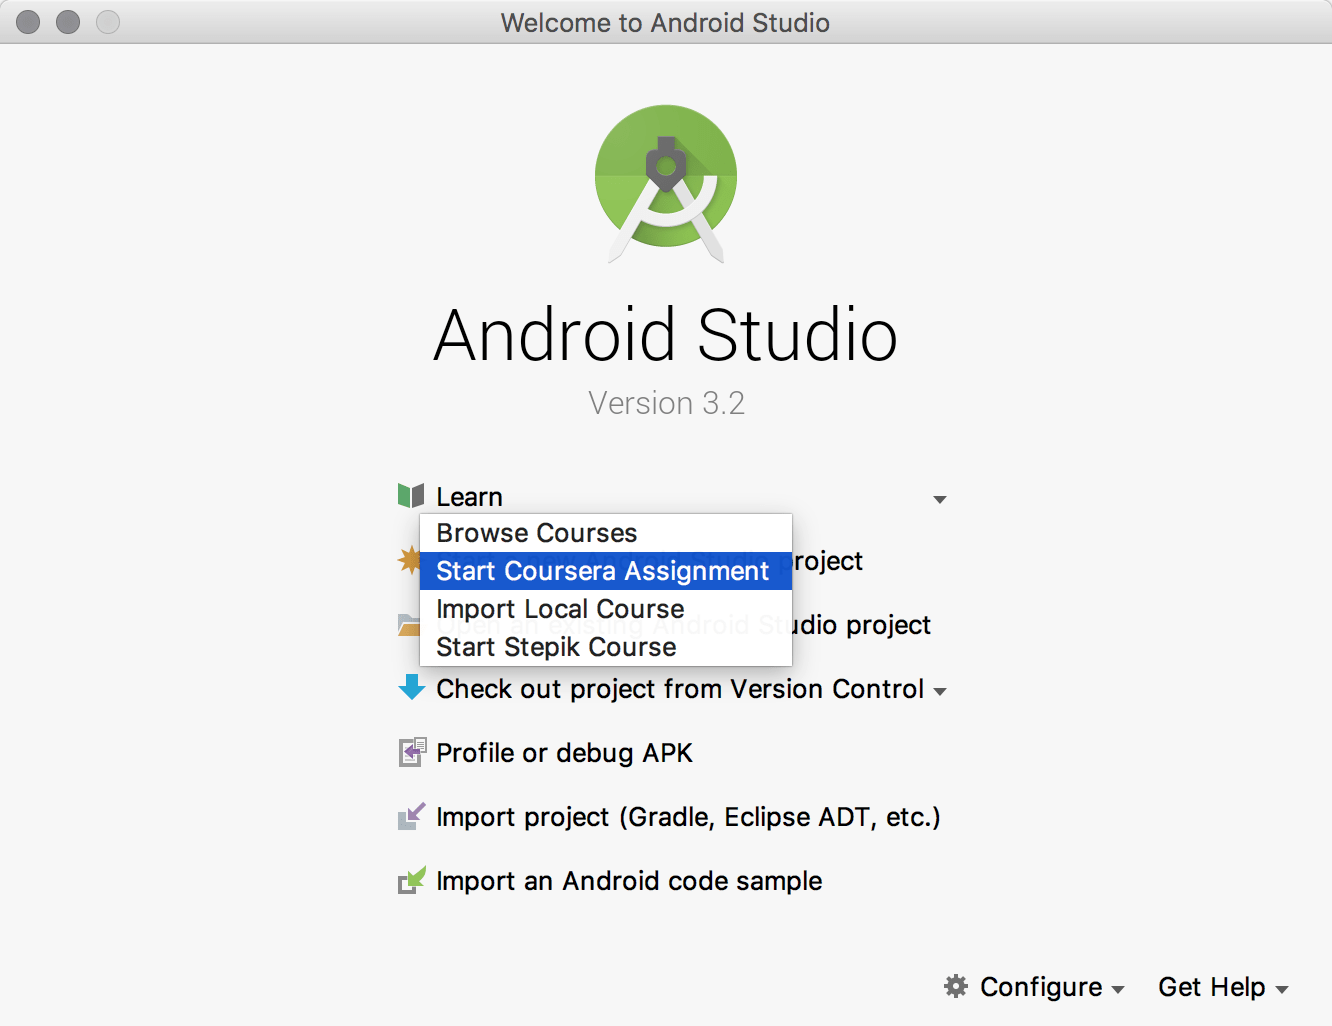 Coursera assignments in Android Studio